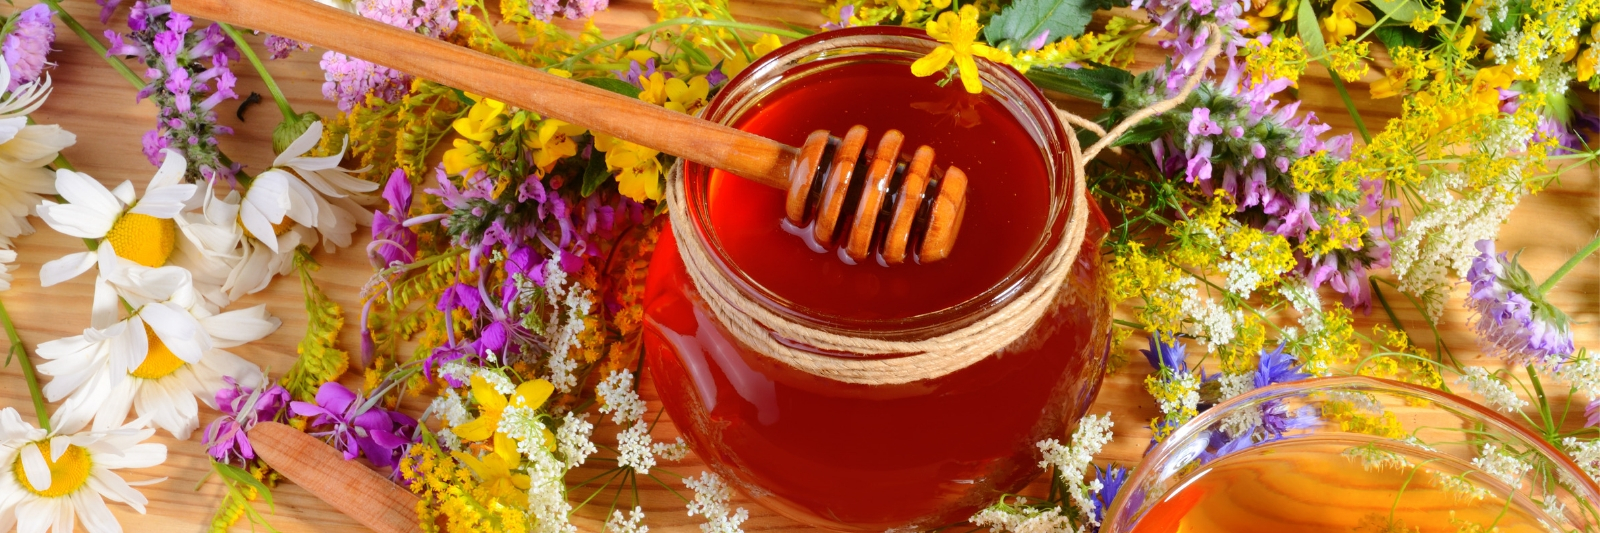 What Are The Health Benefits Of Raw Honey